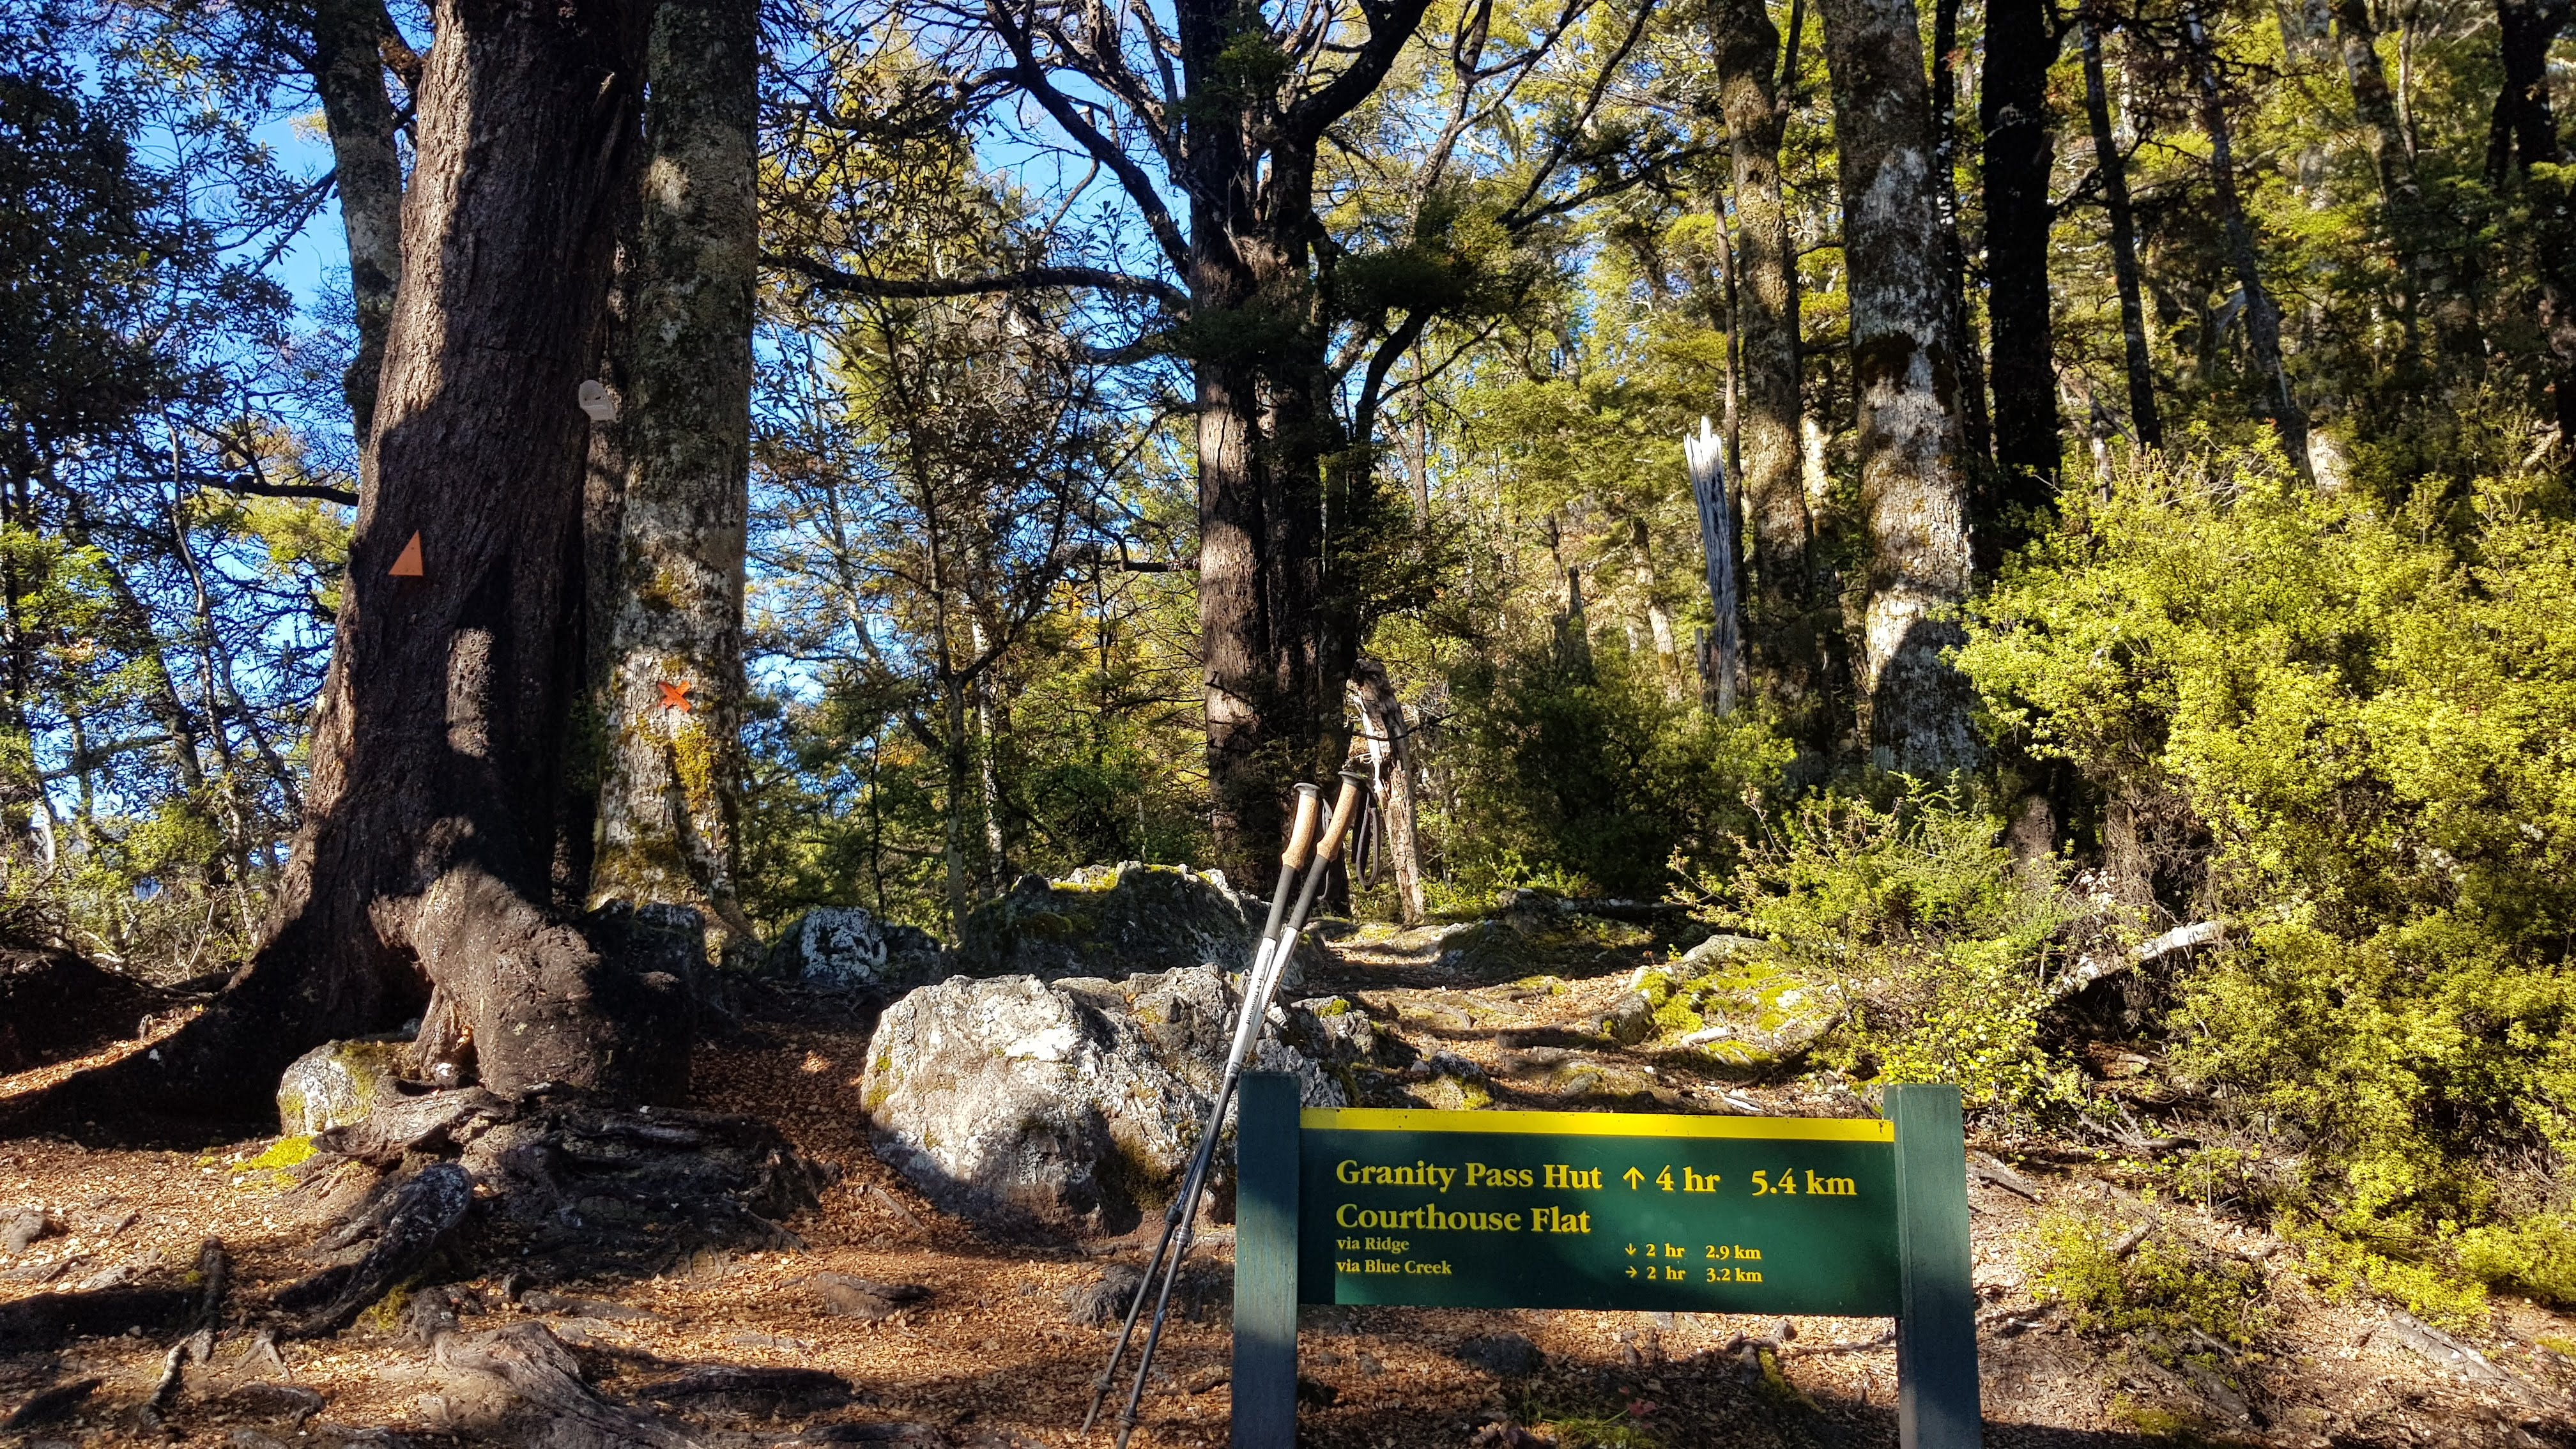 At the junction of the ridge and Blue Creek track